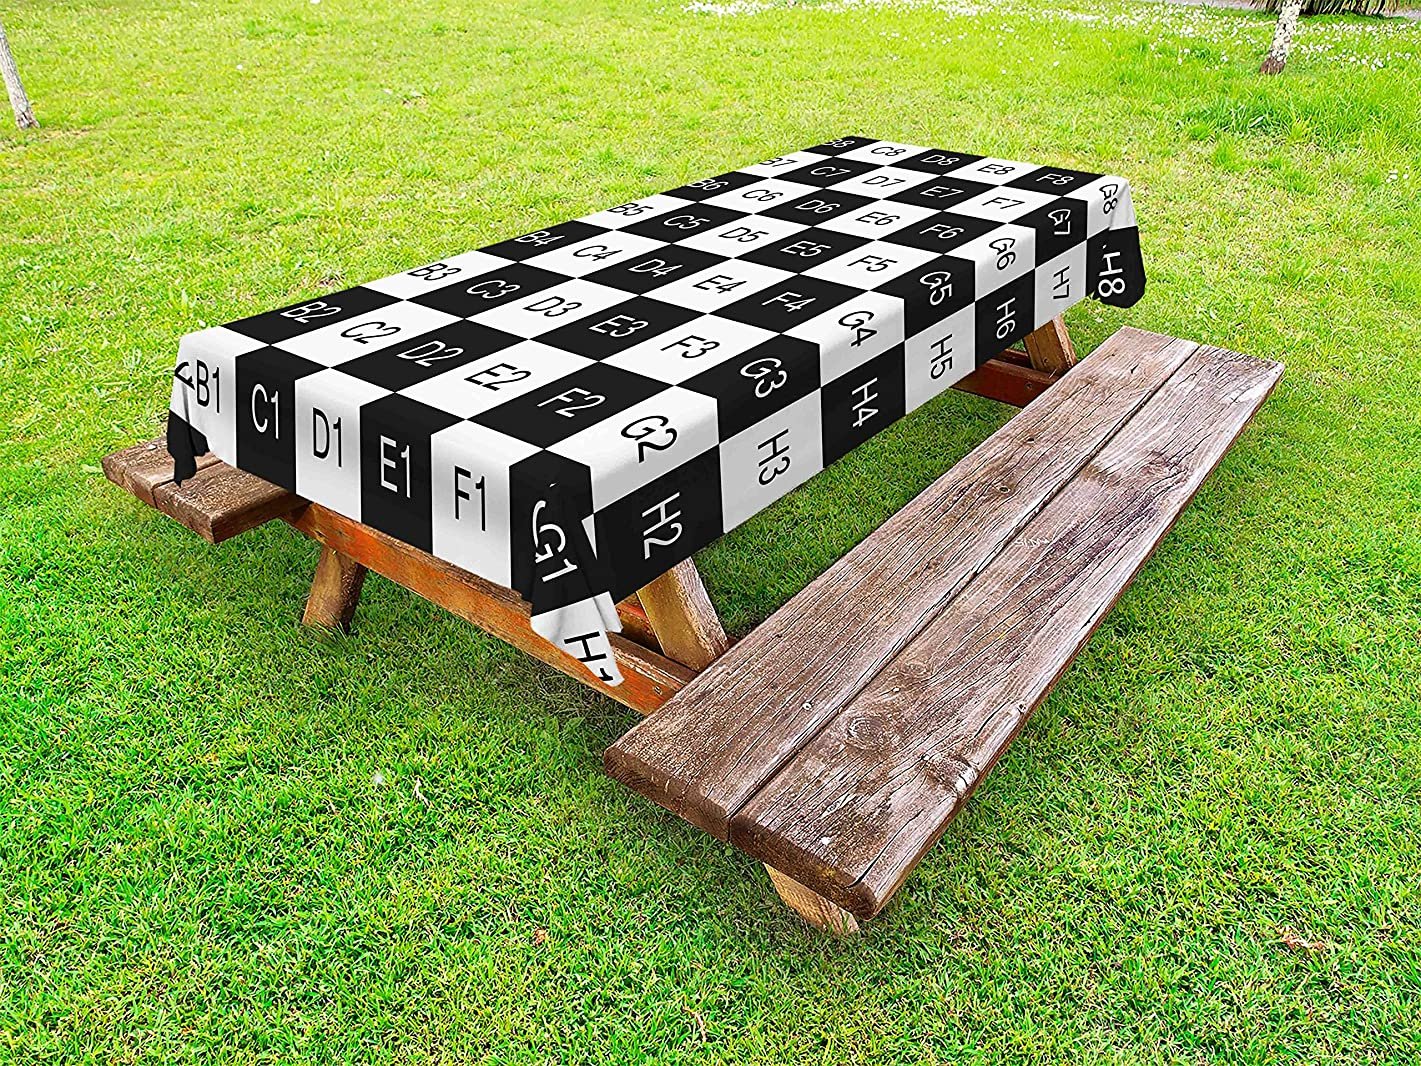 Ambesonne Checkers Game Outdoor Tablecloth, Monochrome Chess Board Design with Tile Coordinates Mosaic Square Pattern, Decorative Washable Picnic Table Cloth, 58 X 84 Inches, Monochrome